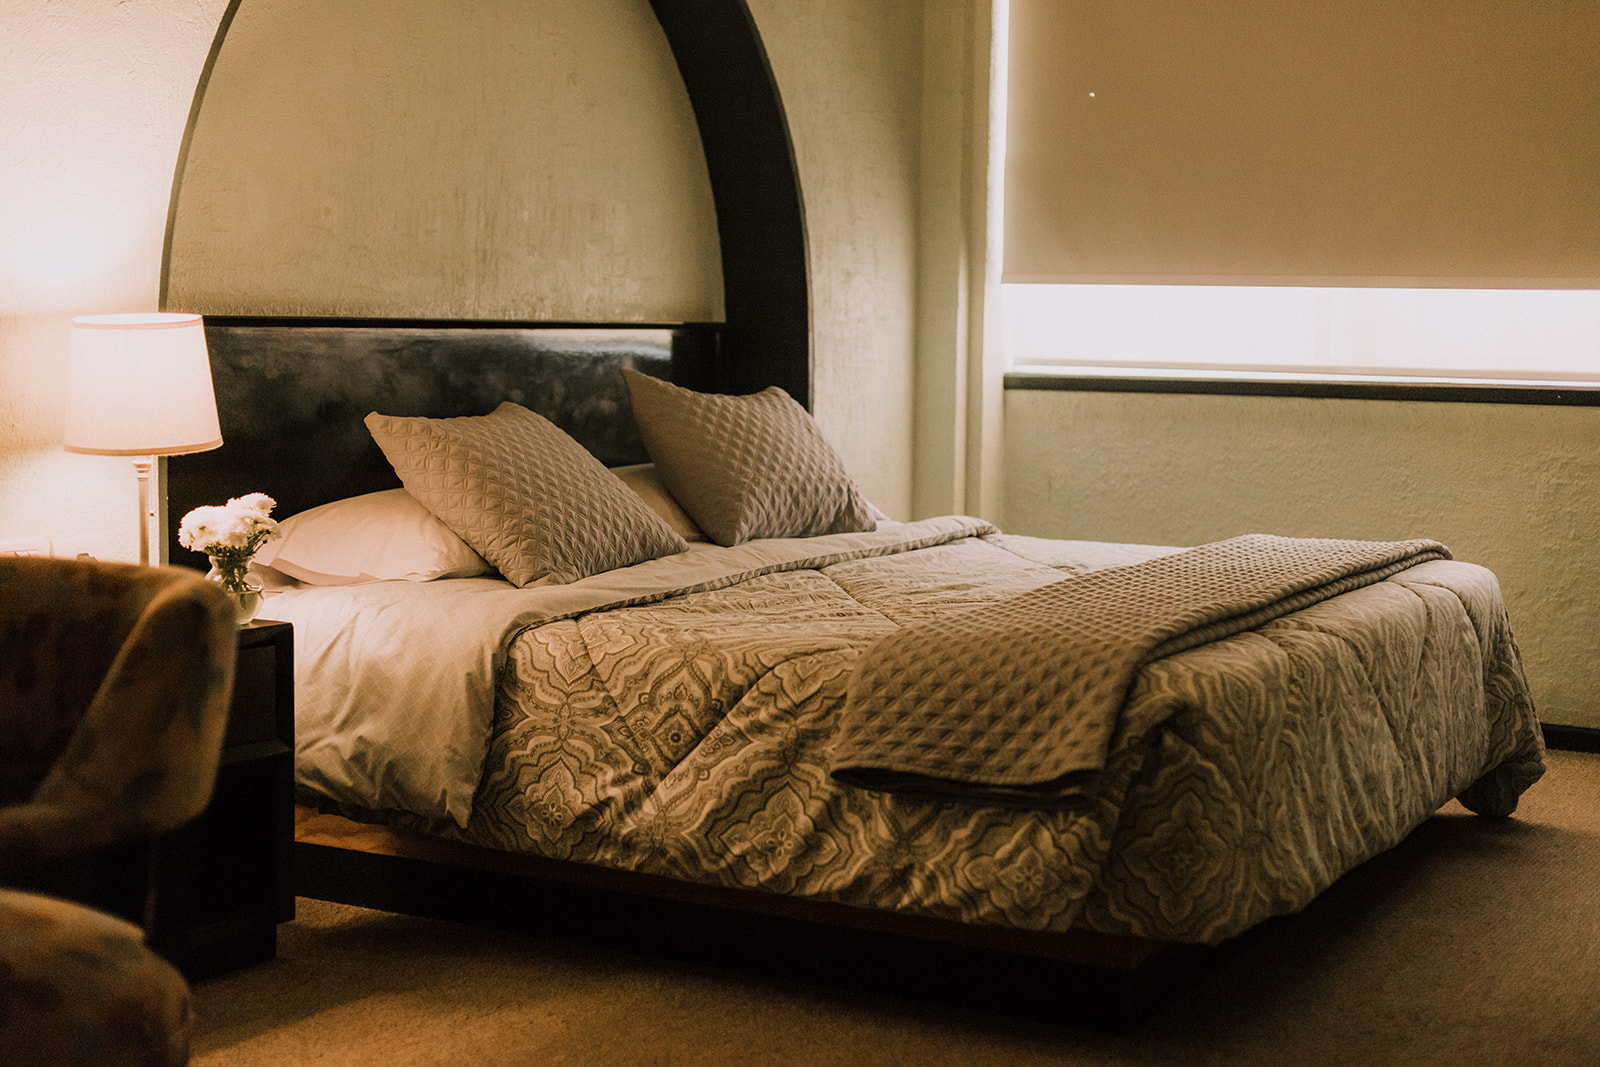 Cama King Size, persianas black-out